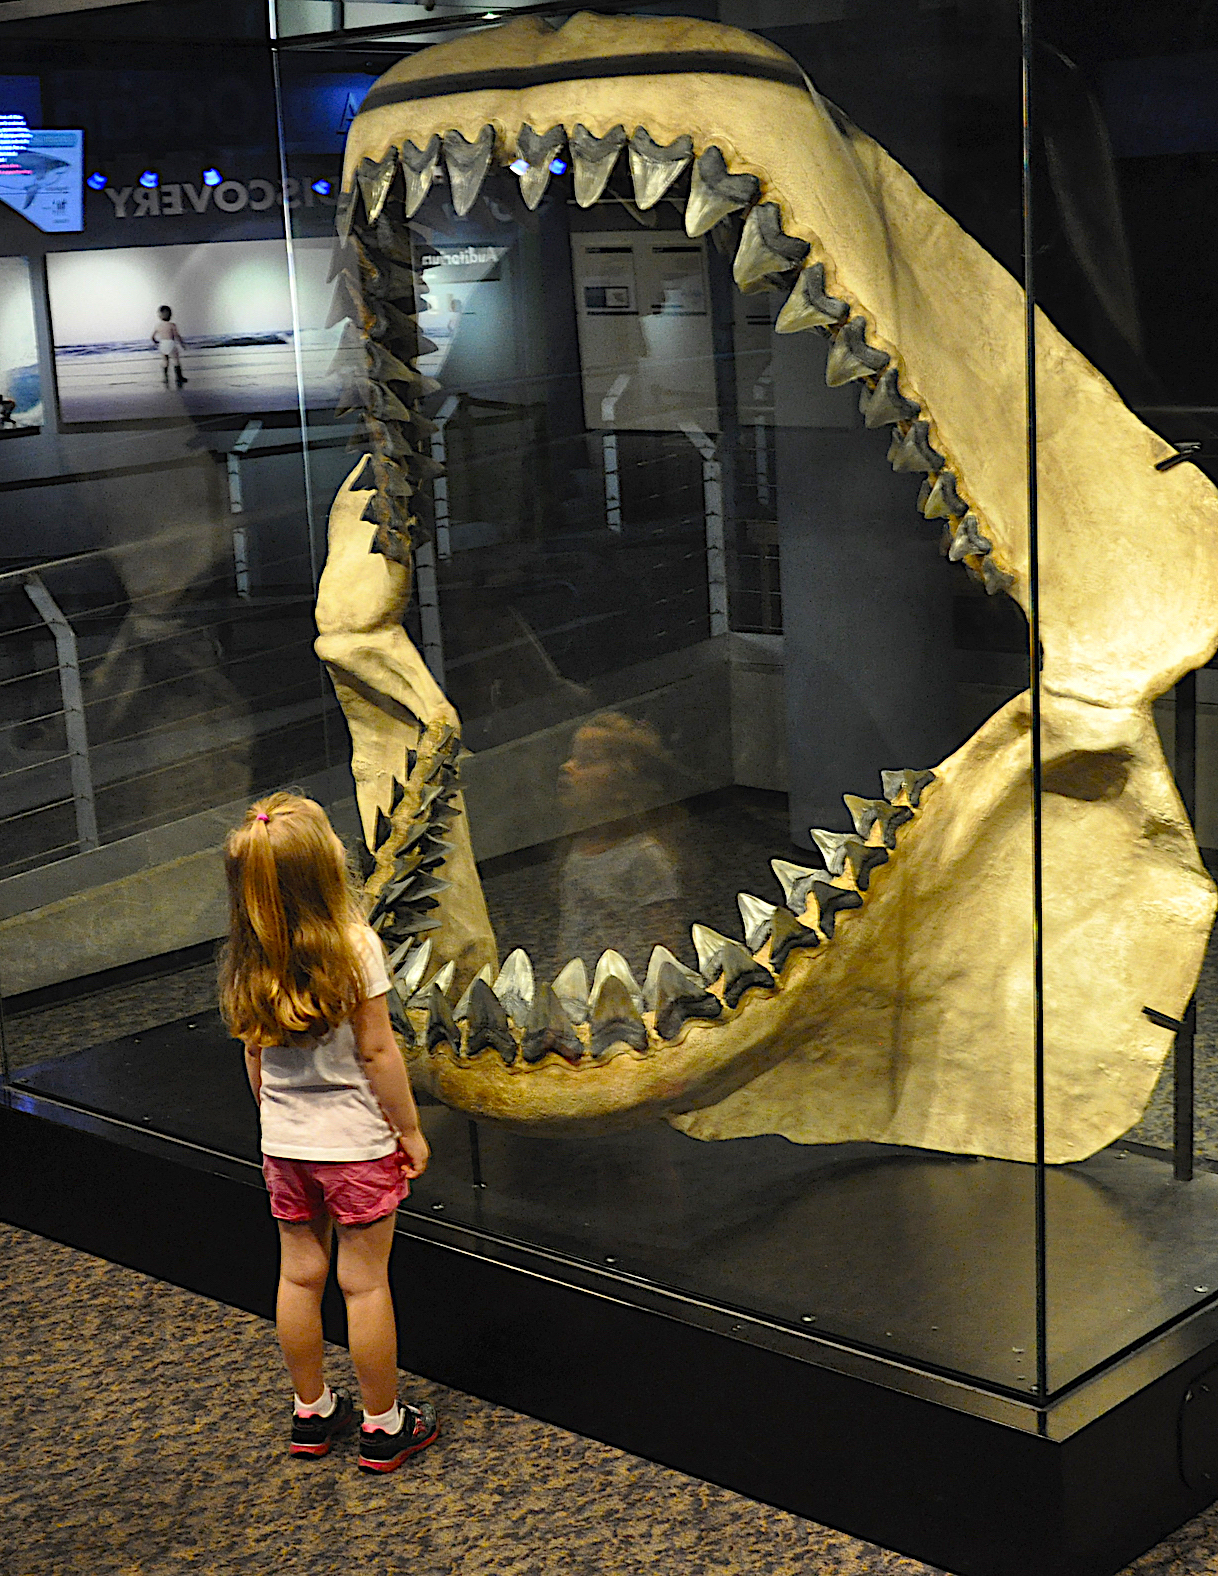 Megalodon jaws (replica), courtesy of N.C. Aquarium at Fort Fisher.